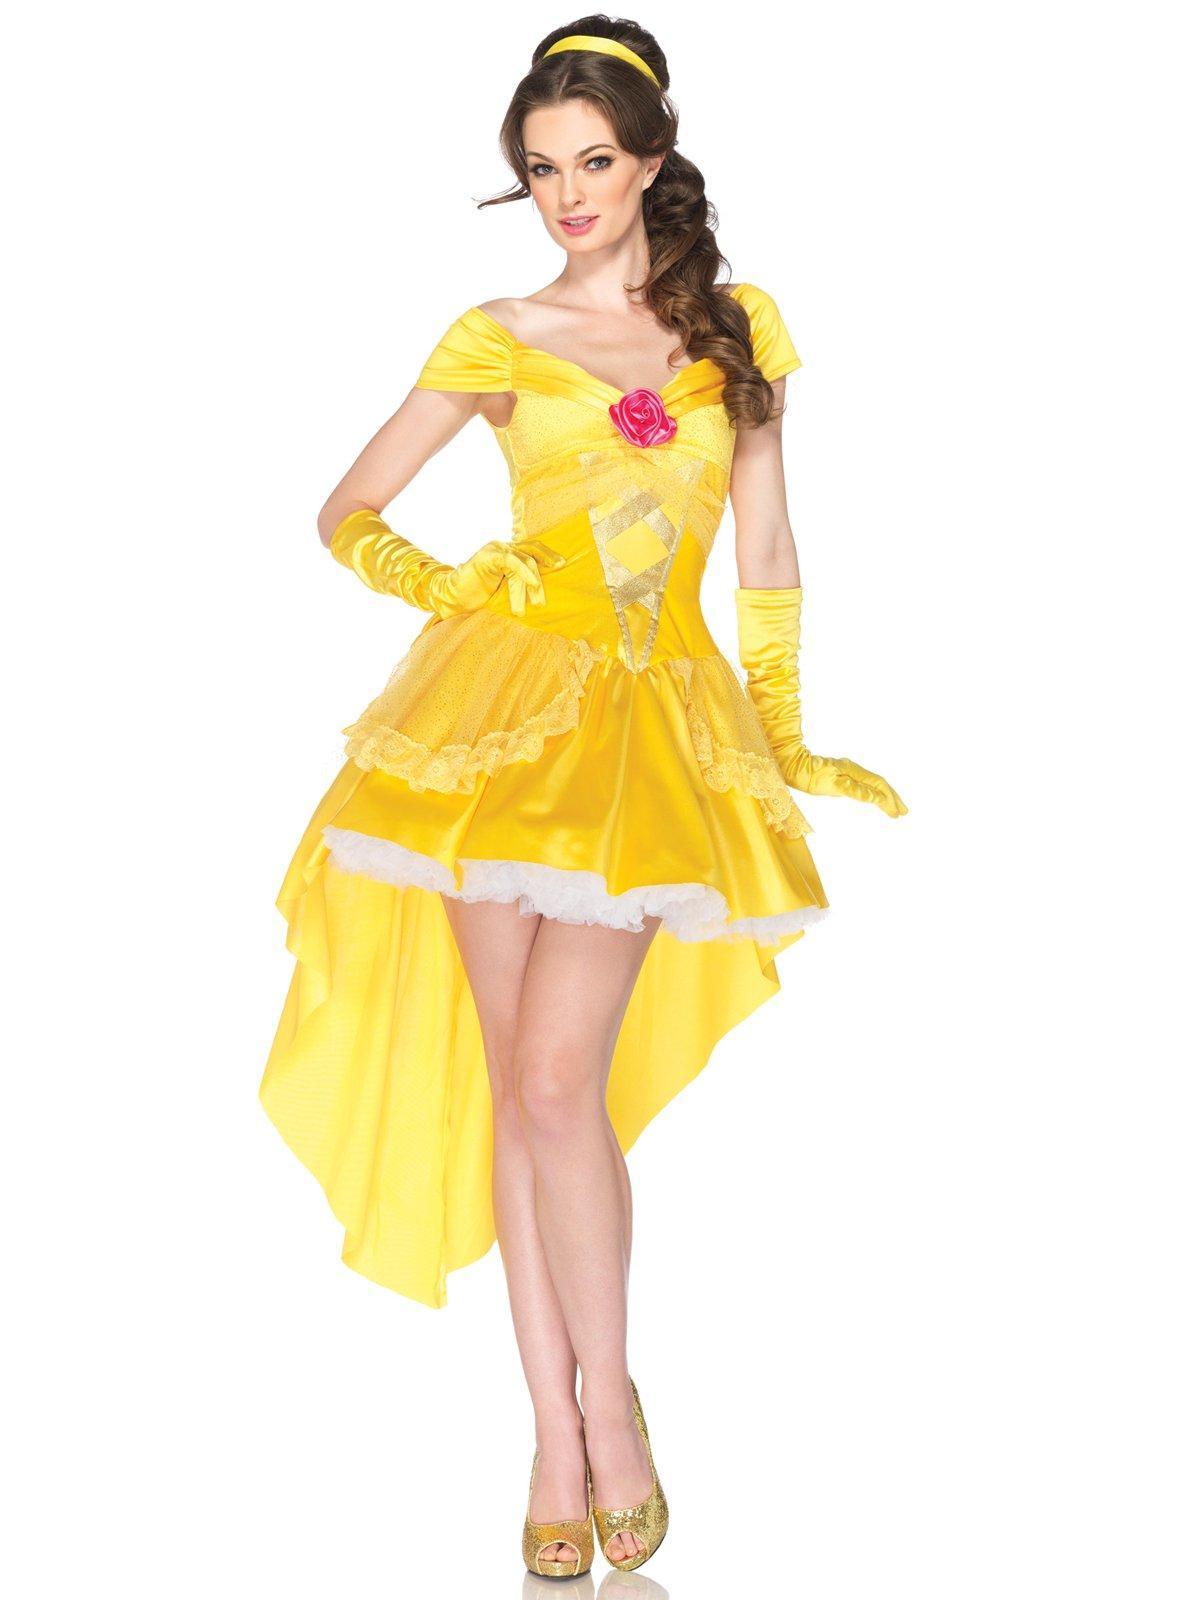 belle standard  sc 1 st  BuyCostumes.com & Top 10 Tuesdays: Adult Disney Princess Costumes - Halloween Costume ...